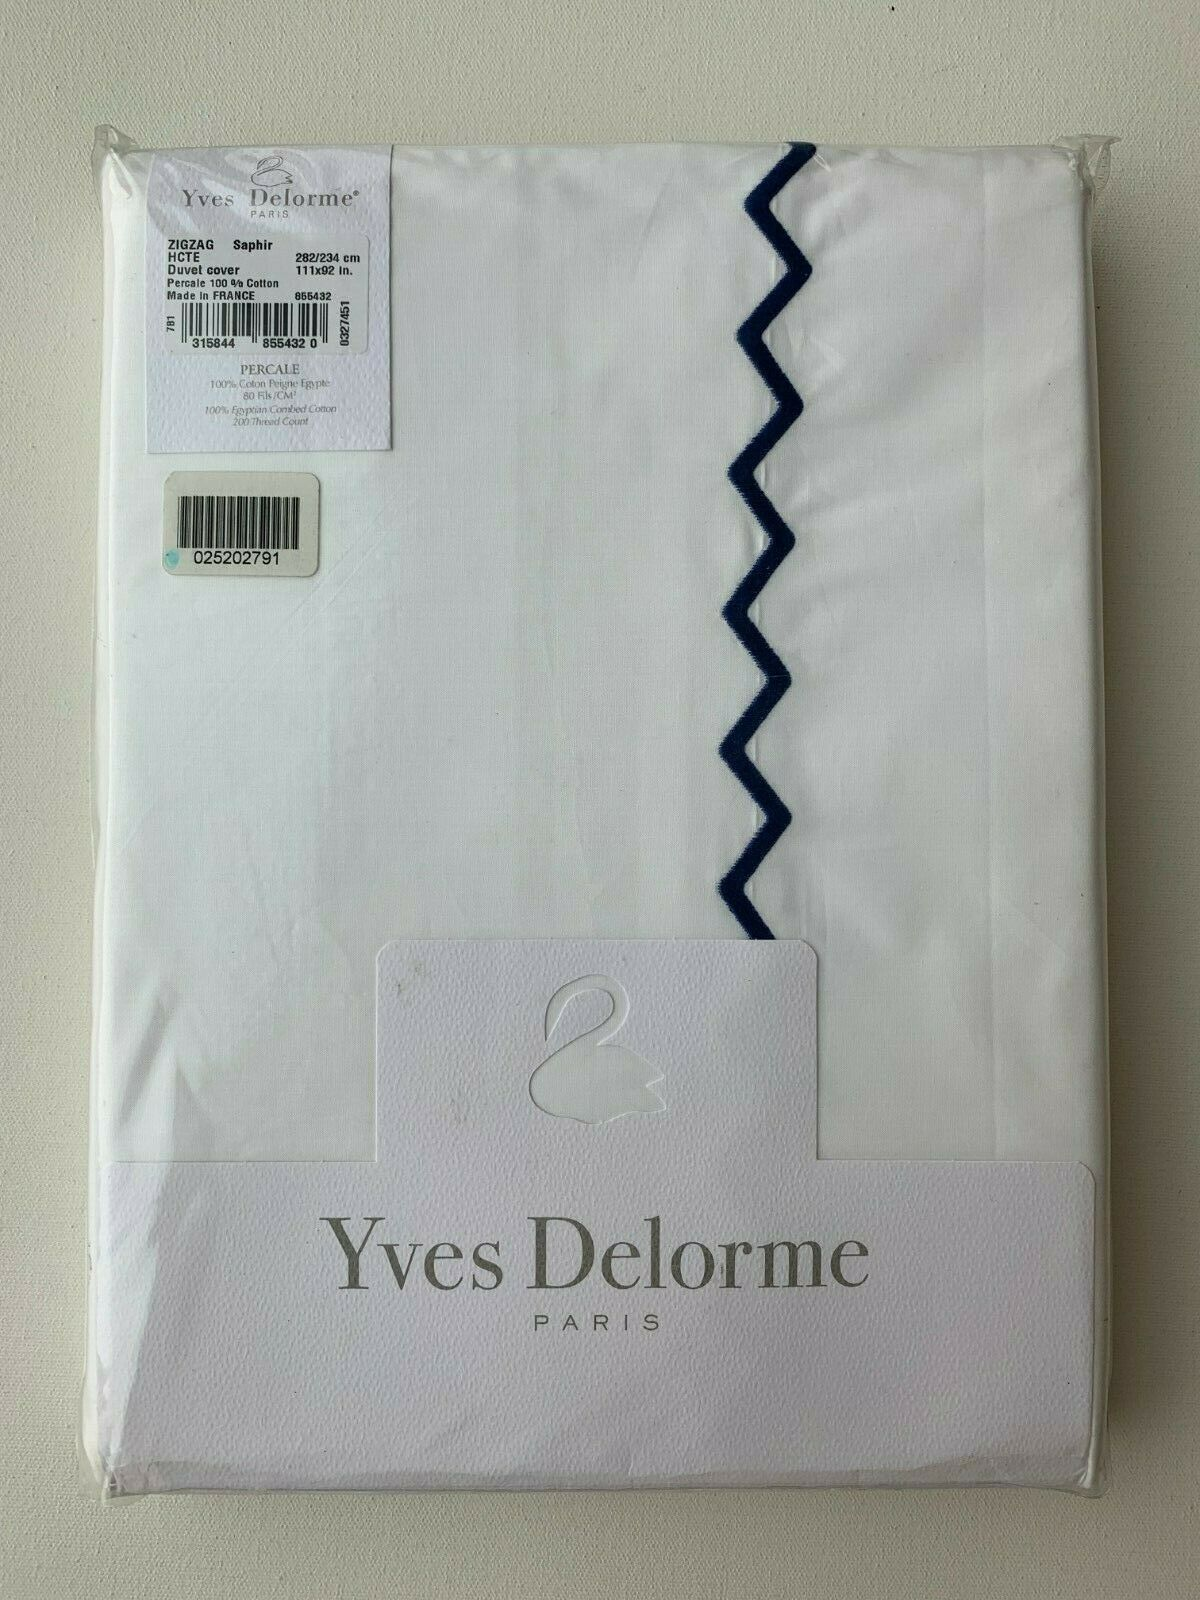 Yves Delorme ZIGZAG Zig Zag Duvet Cover in Saphir King Size 111 x 92 in - NEW